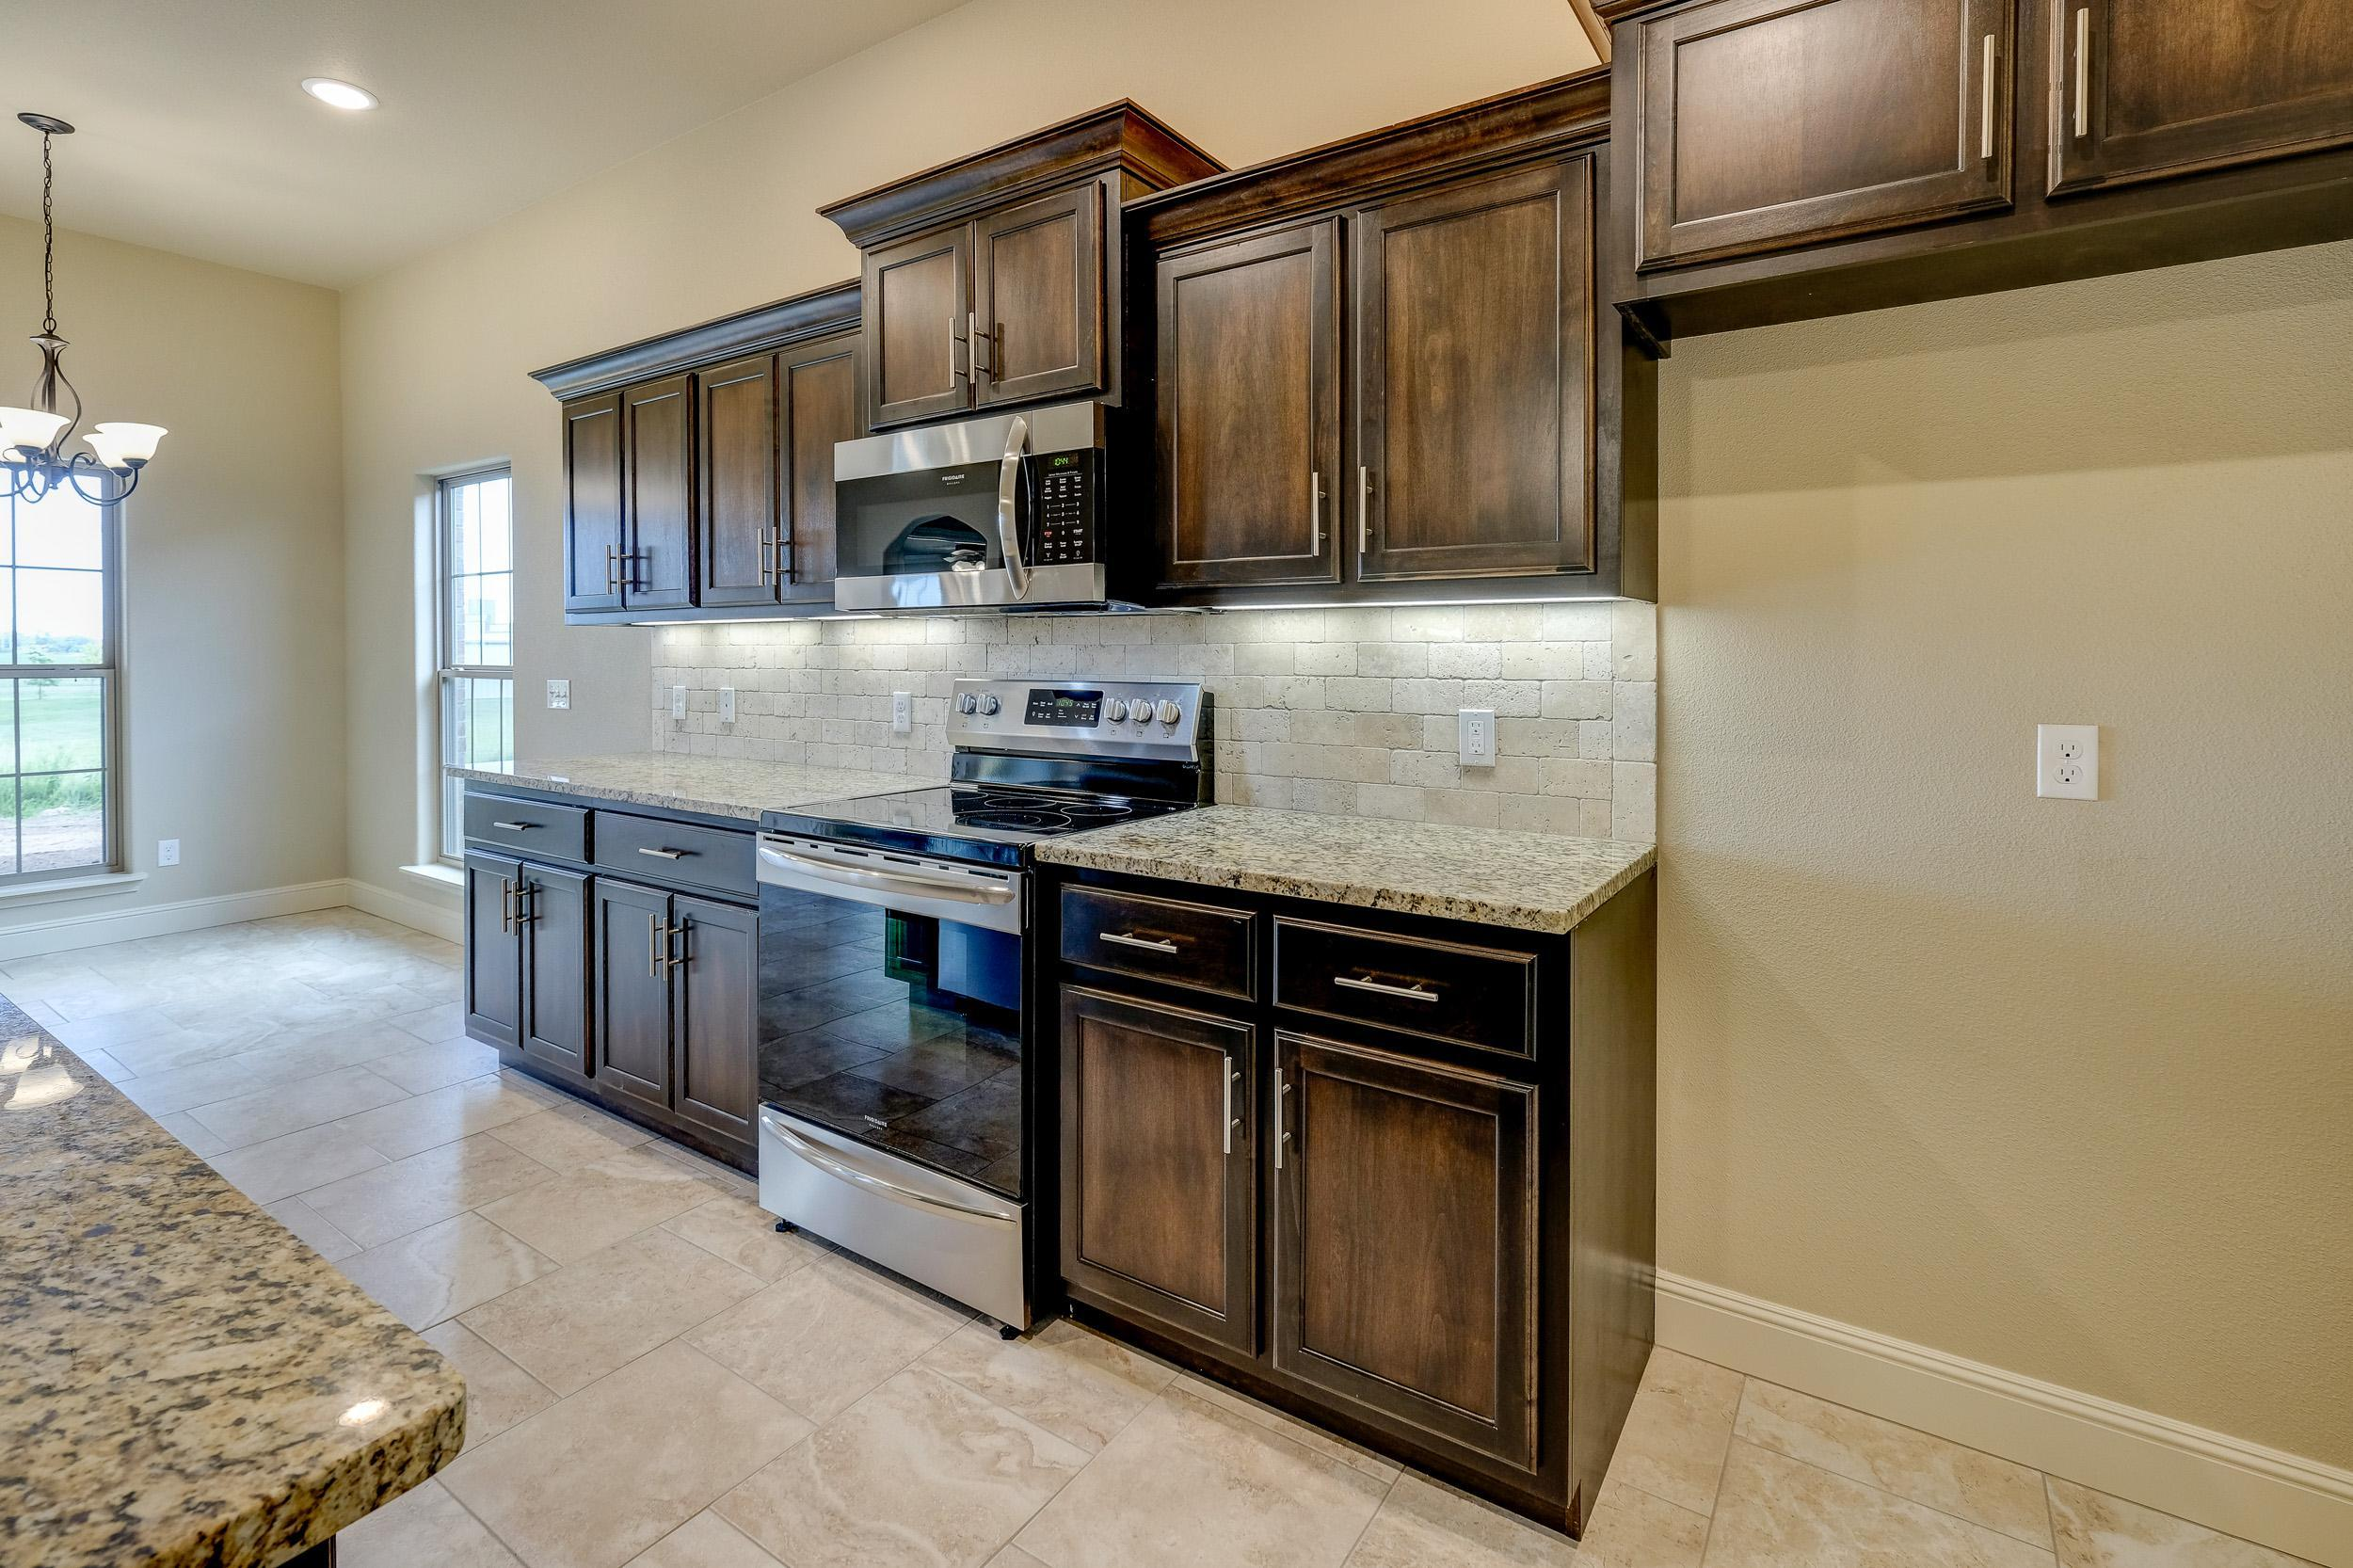 Kitchen featured in the 1650KI Series By Schuber Mitchell Homes in Joplin, MO